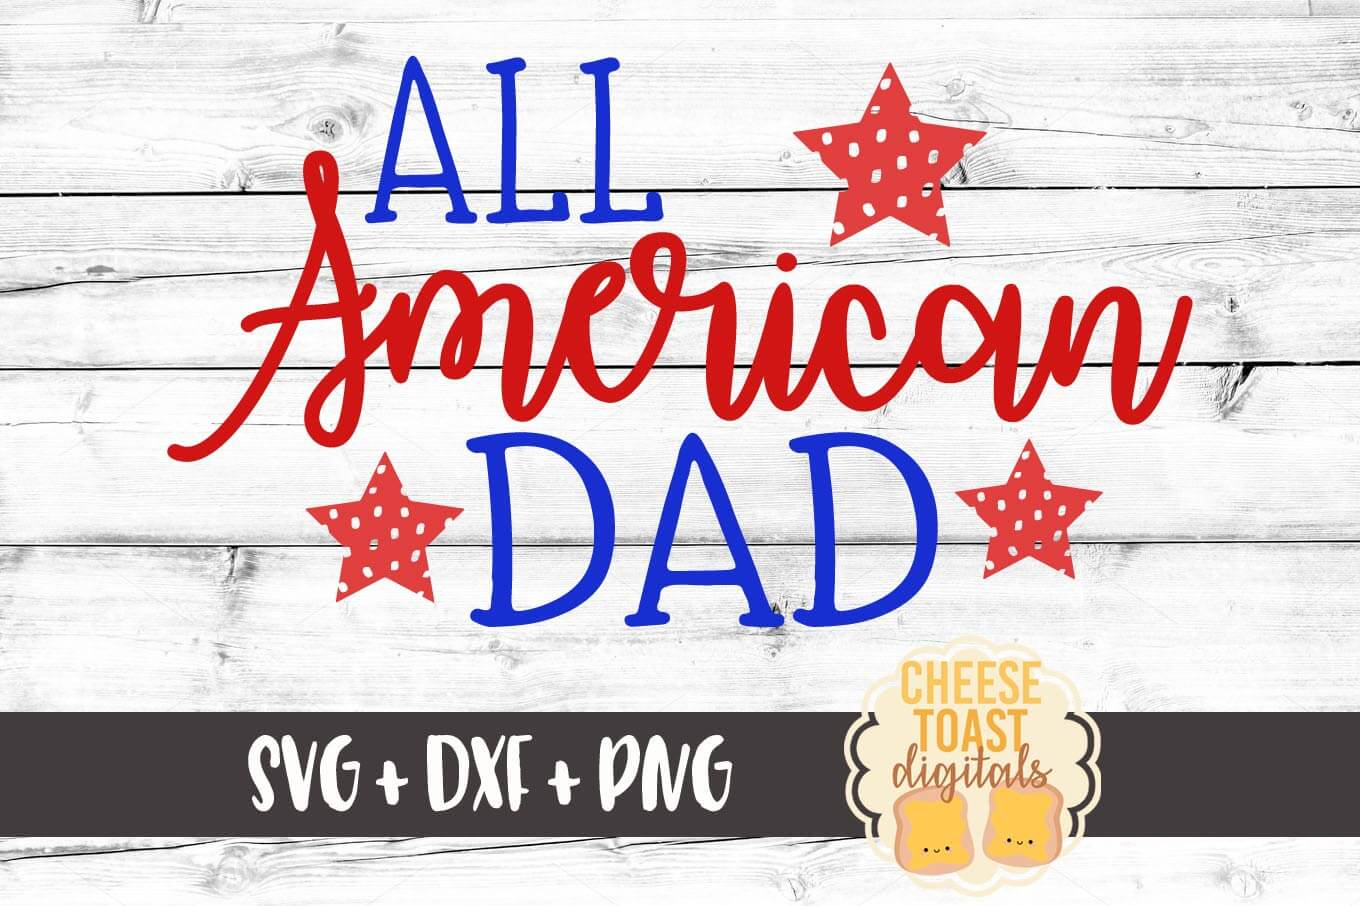 All American Dad - SVG, PNG, DXF